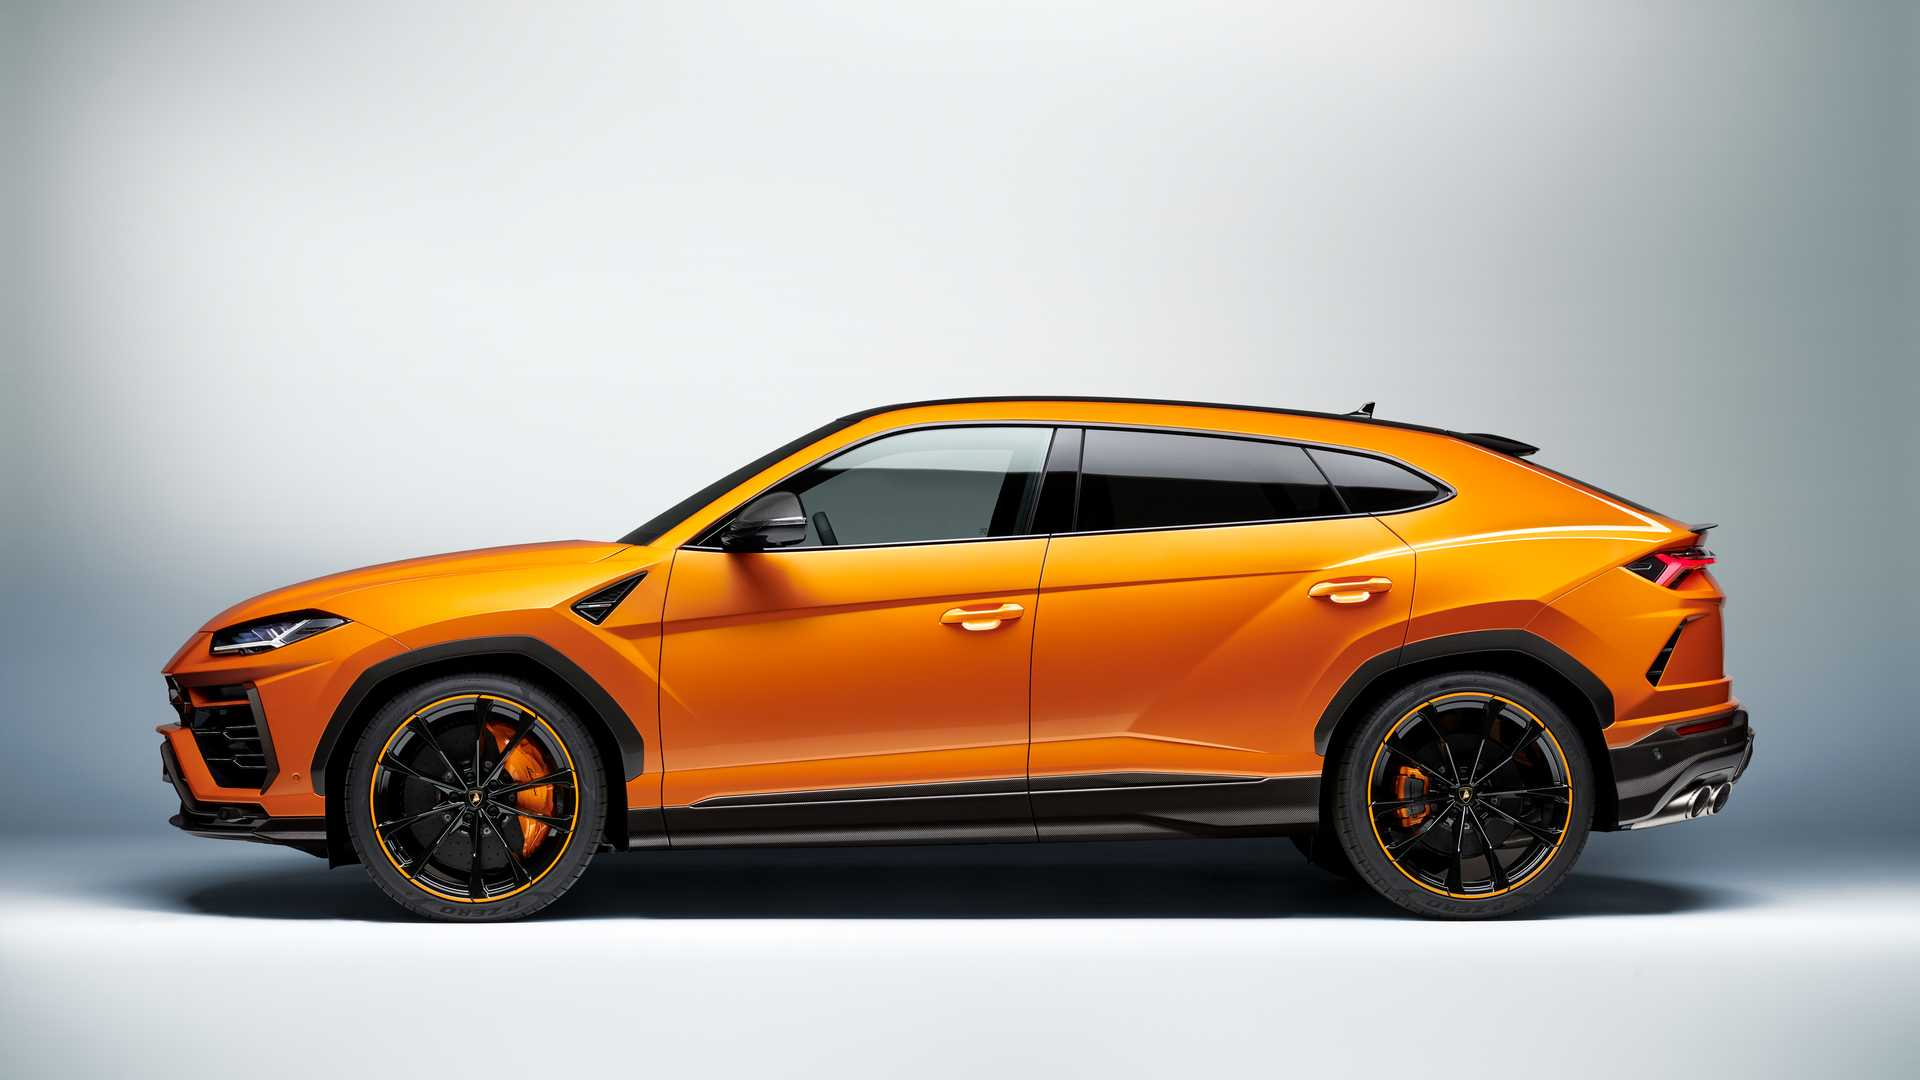 Lamborghini presents the Urus Pearl Capsule which is SUV with complete new design and provides customers the option to choose their color before purchasing.